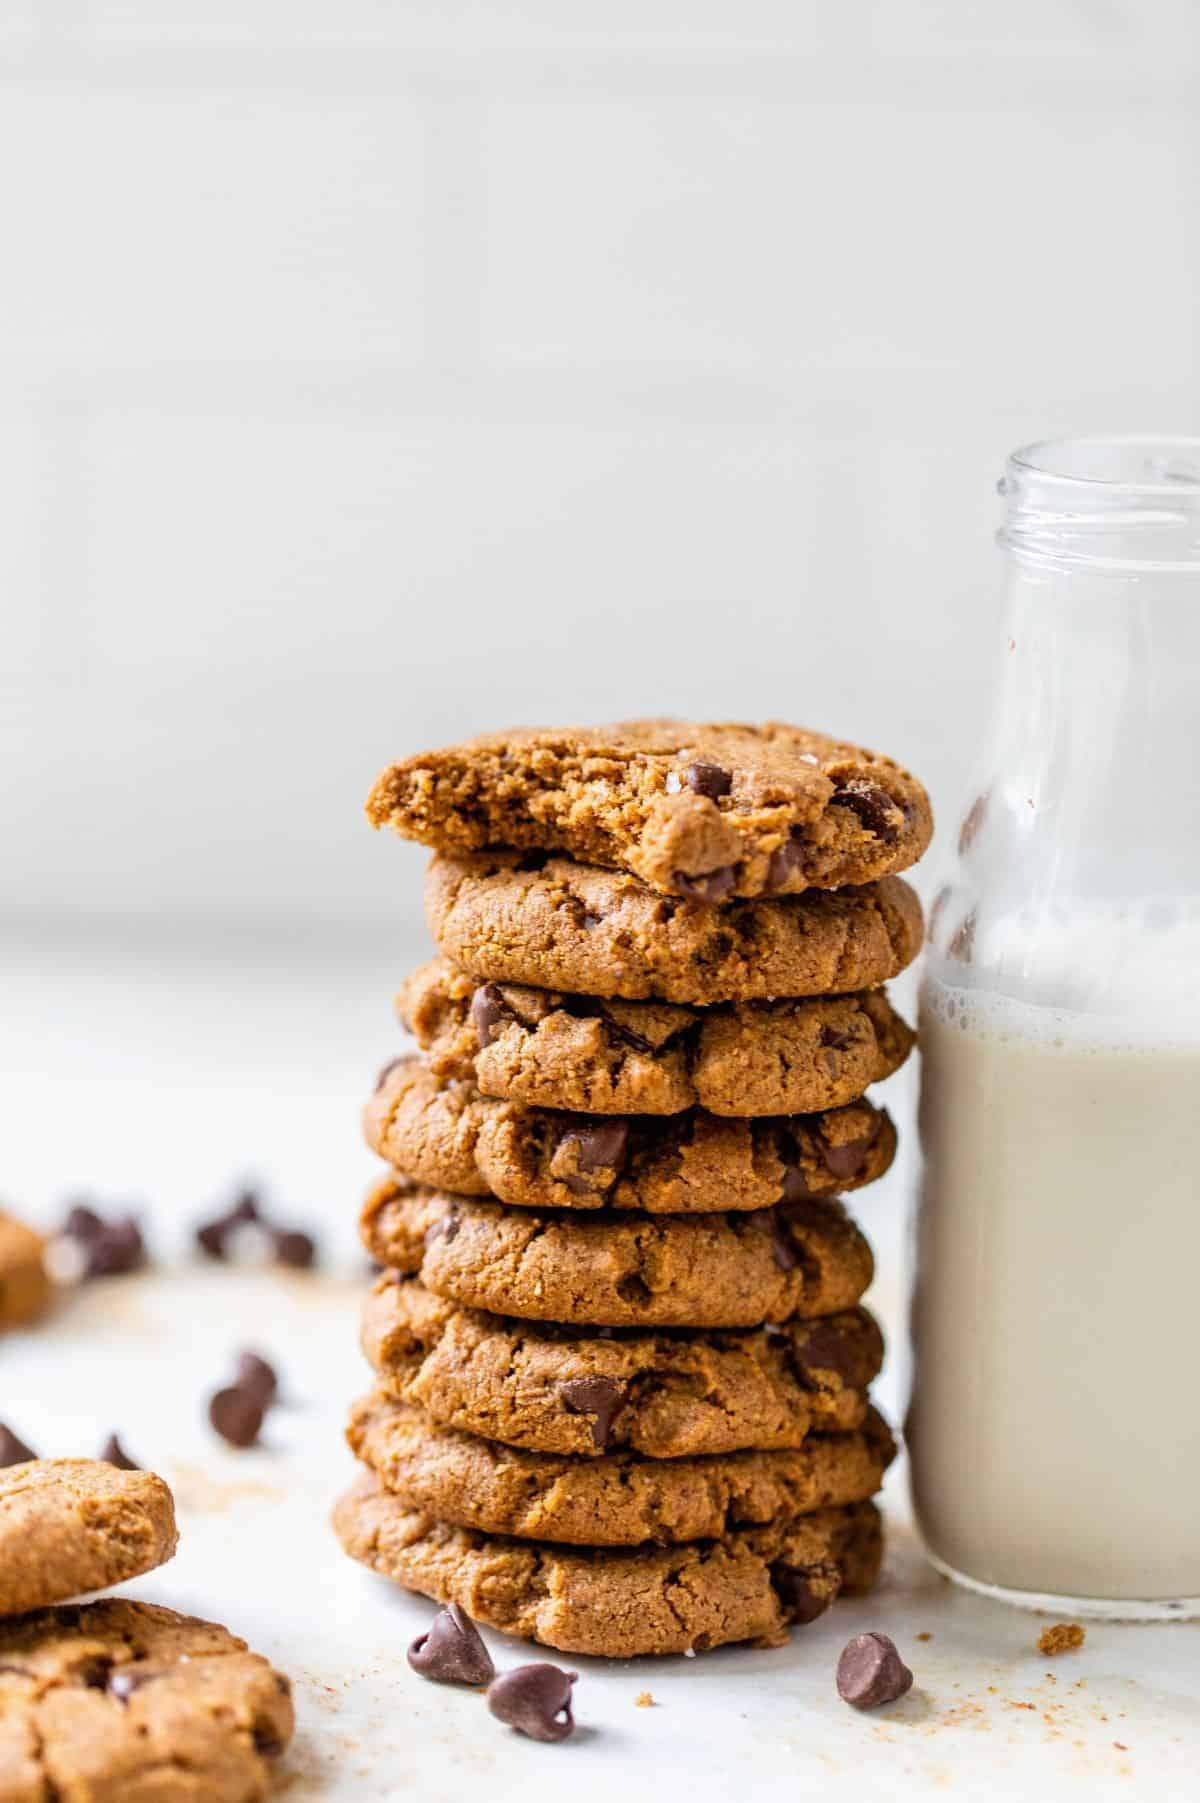 gluten-free chocolate chip cookies stacked against a glass of milk